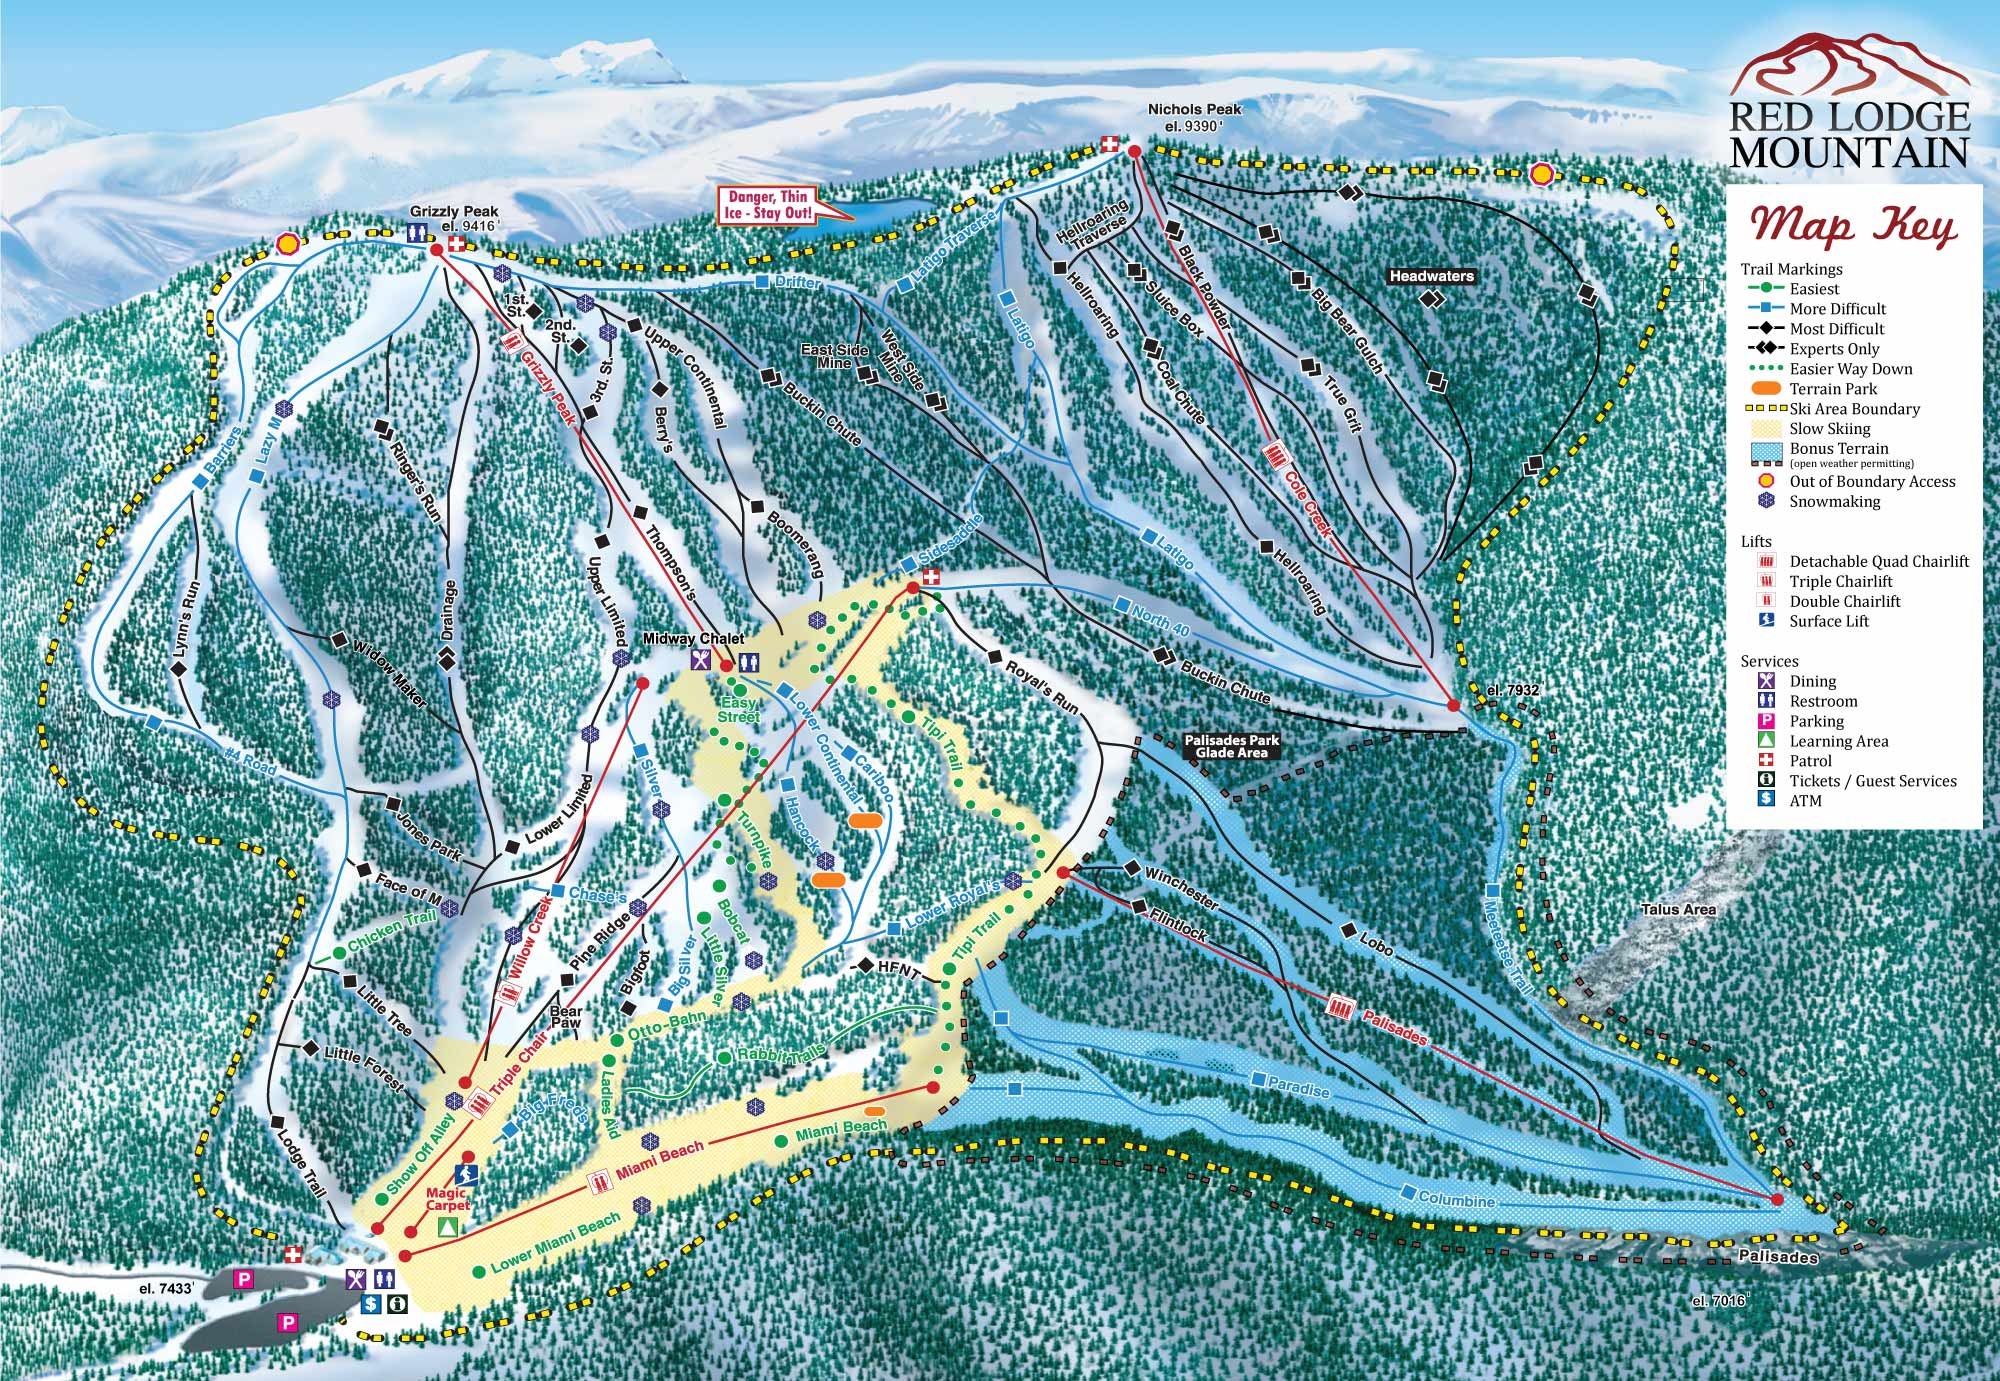 Red Lodge Mountain Piste / Trail Map